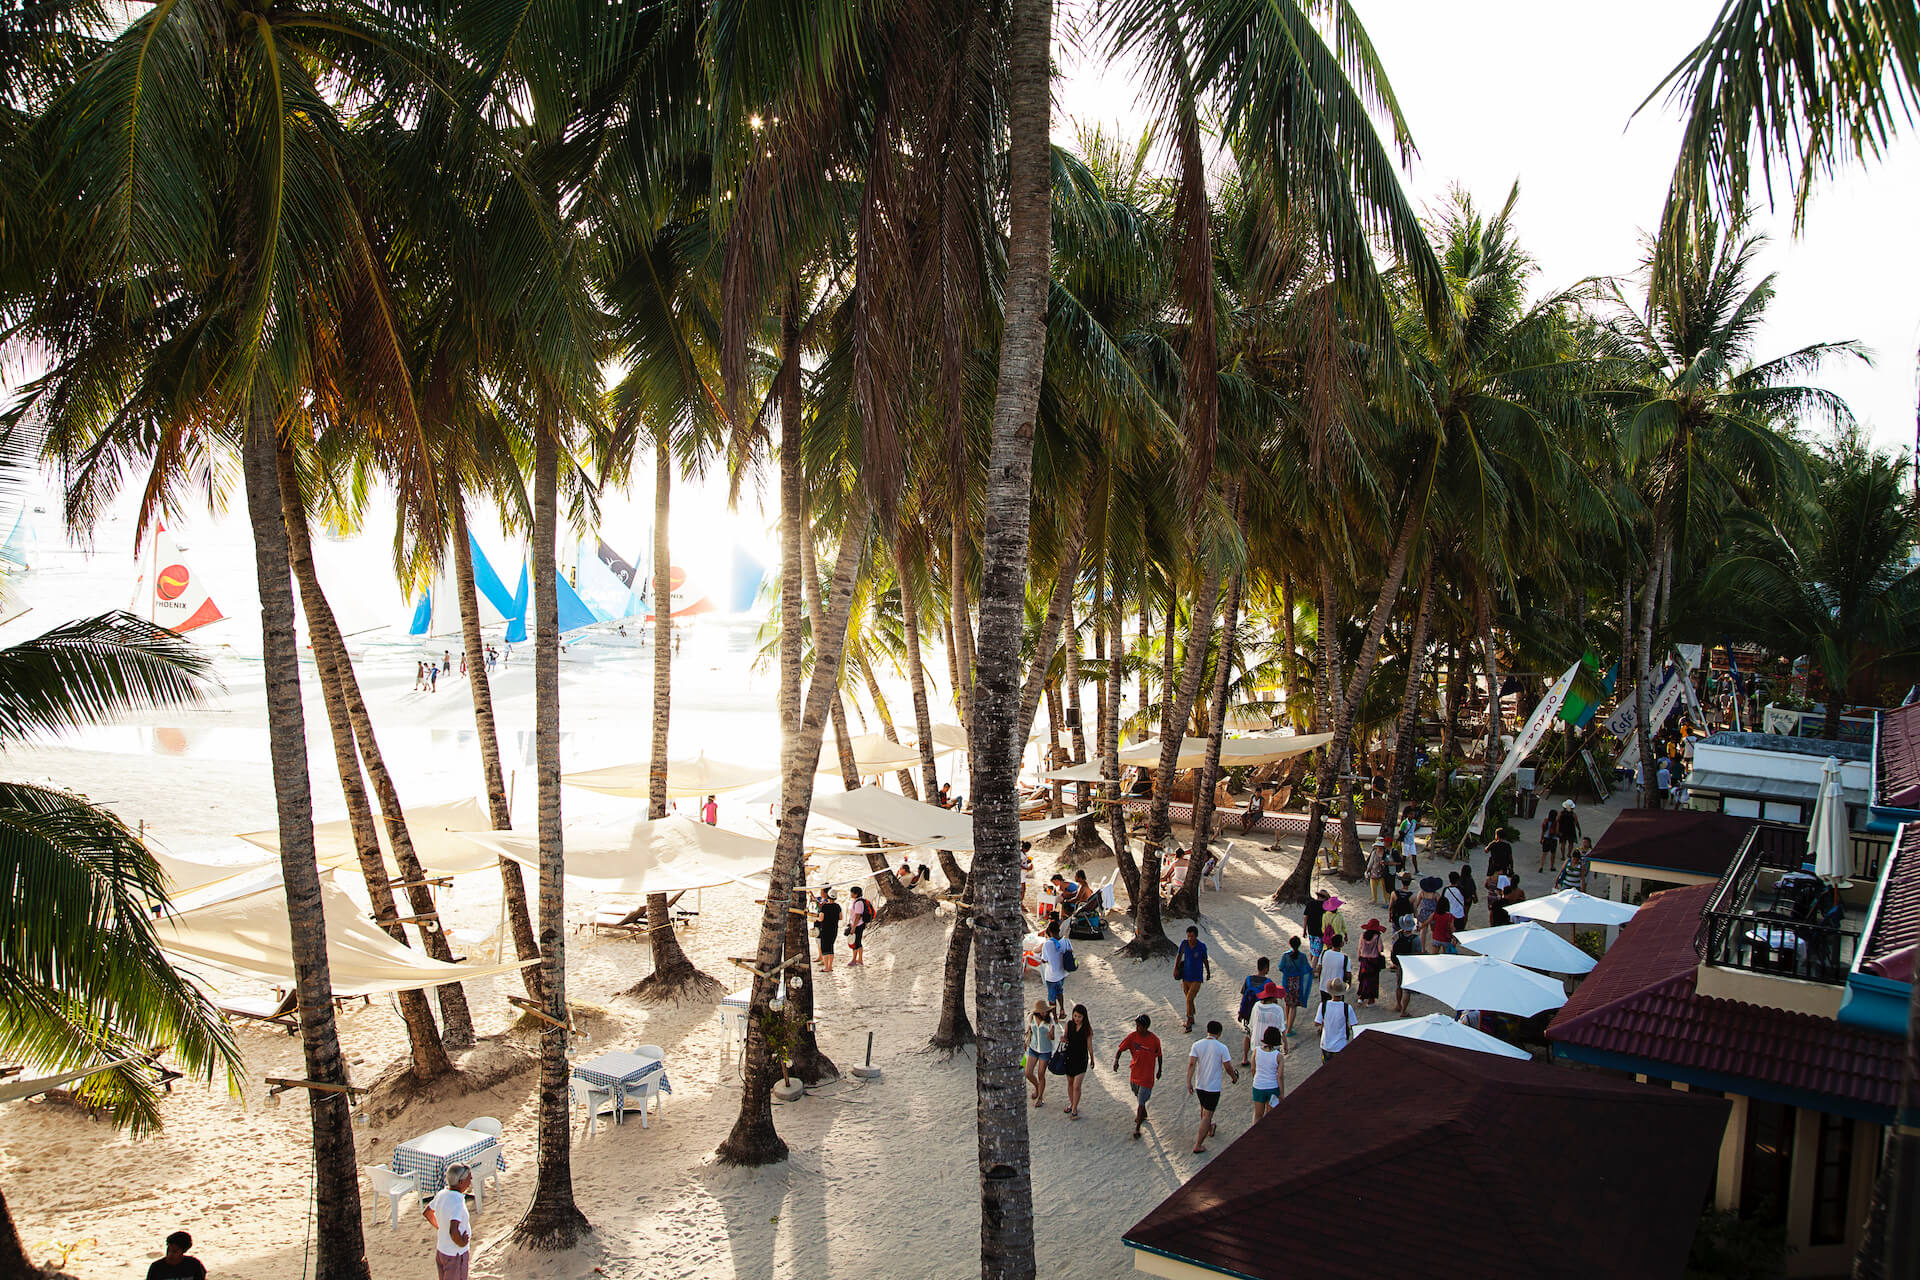 The beautiful shores of Boracay are, once again, open to travelers. But the locals say the road to recovery will need more than a tourism boost.